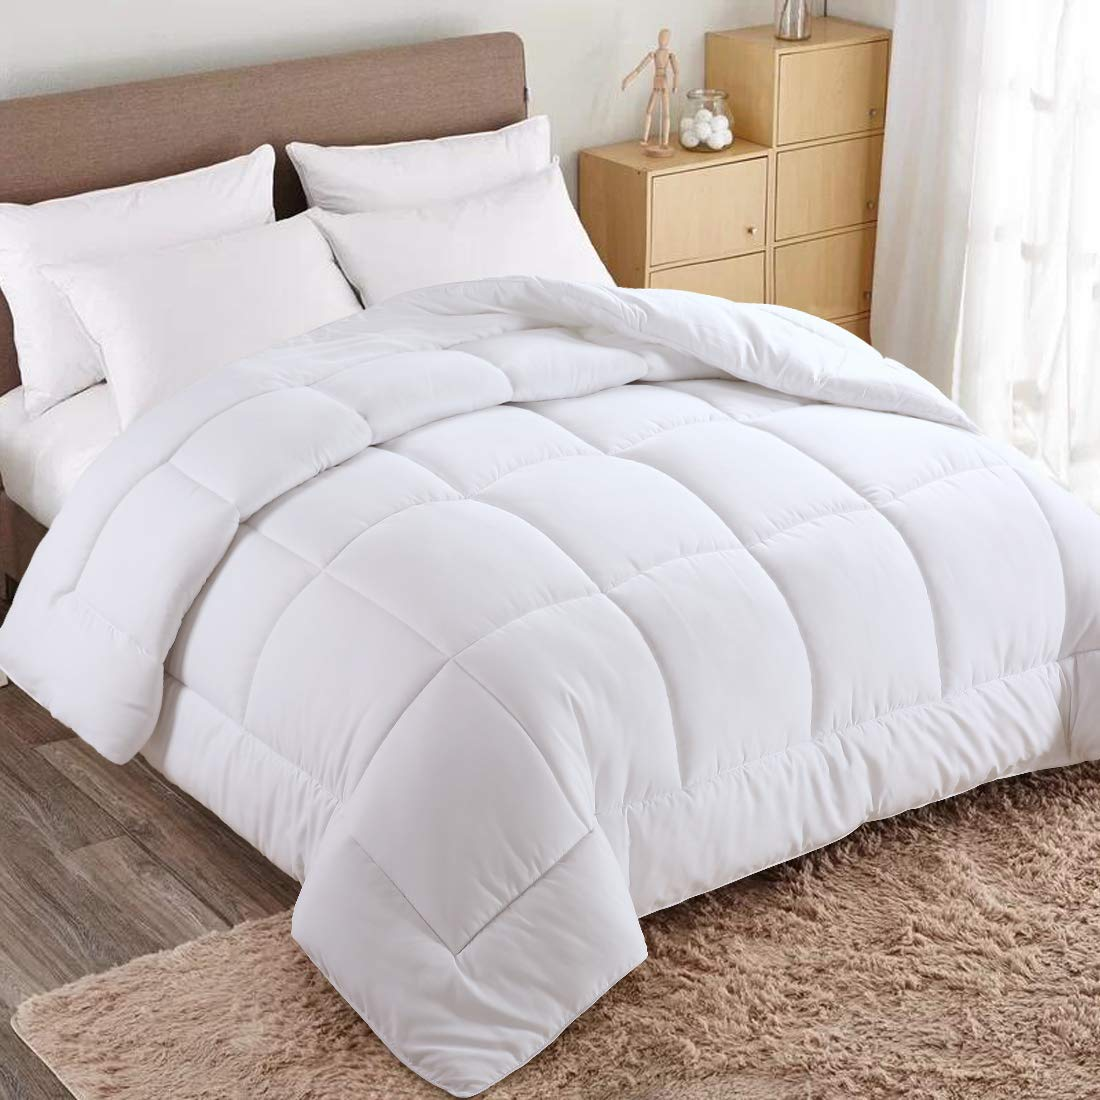 WARM HARBOR Queen All Season White Down Alternative Quilted Comforter and Duvet Insert - Luxury Hotel Collection Premium Lightweight(Queen,White)